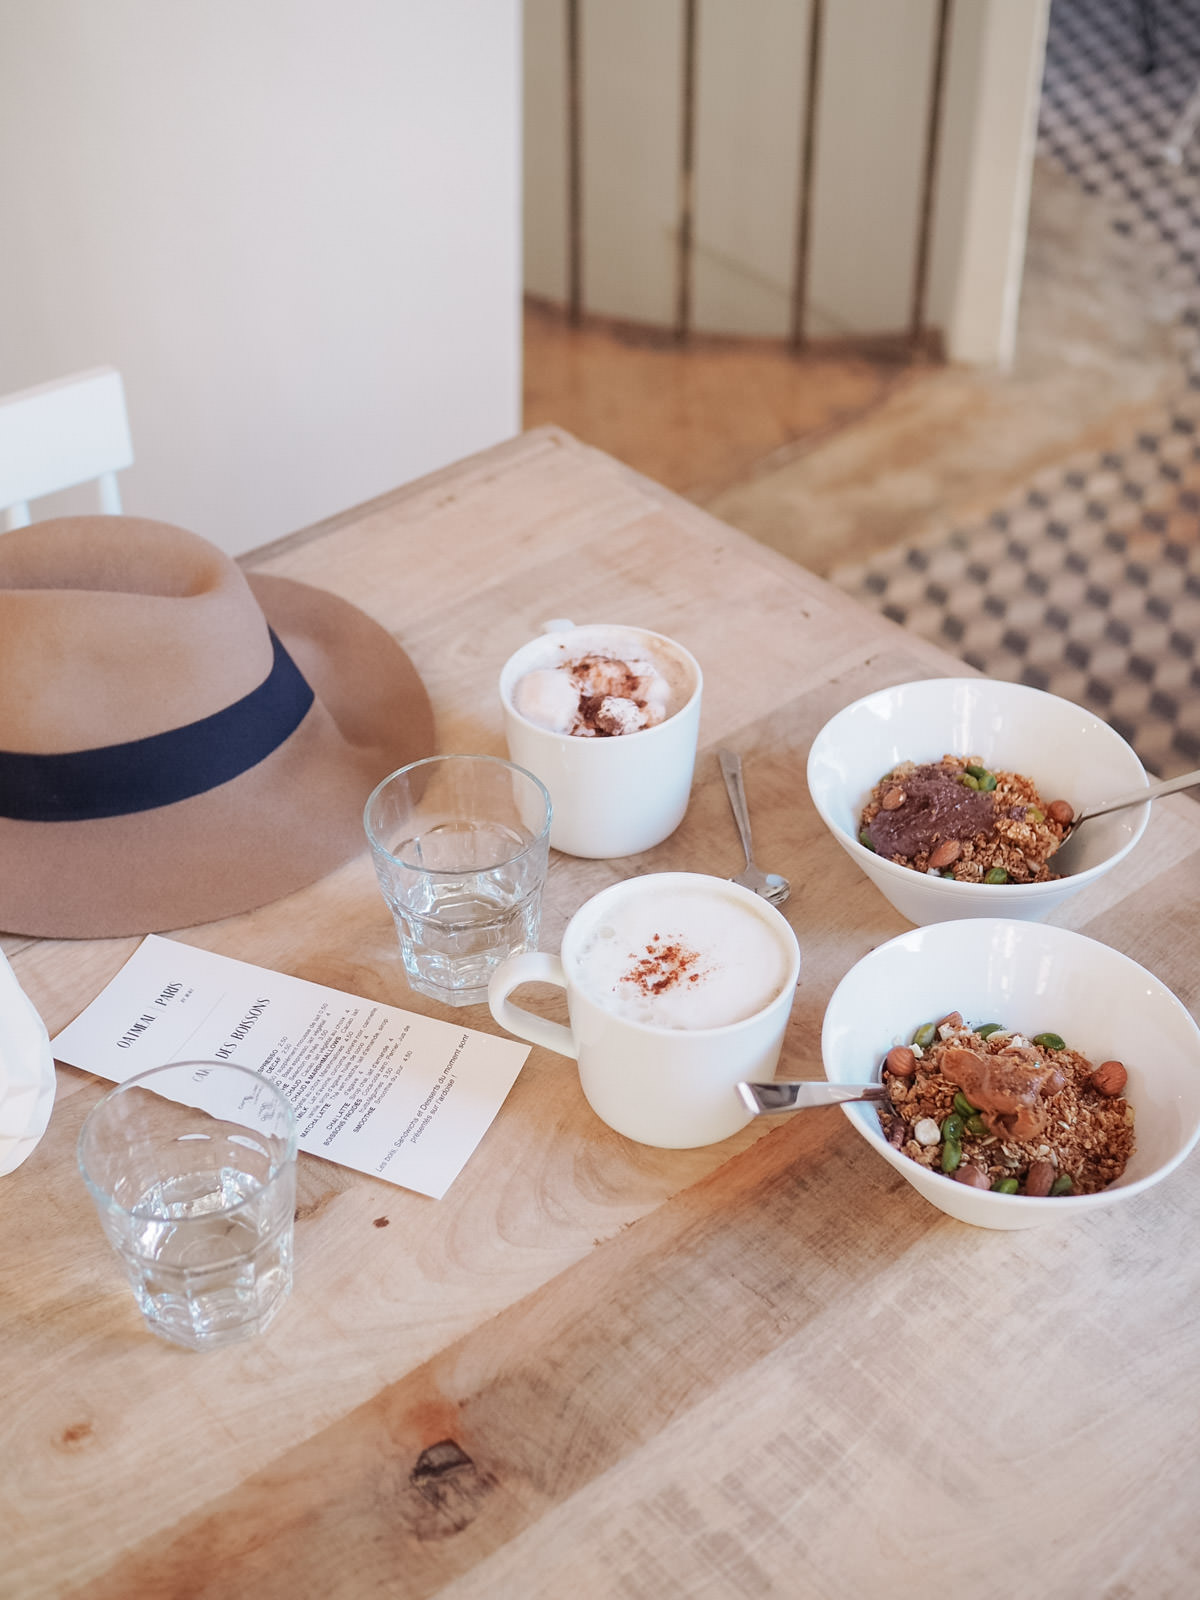 Blog-Mode-And-The-City-Lifestyle-Cinq-Petites-Choses-201-oatmeal